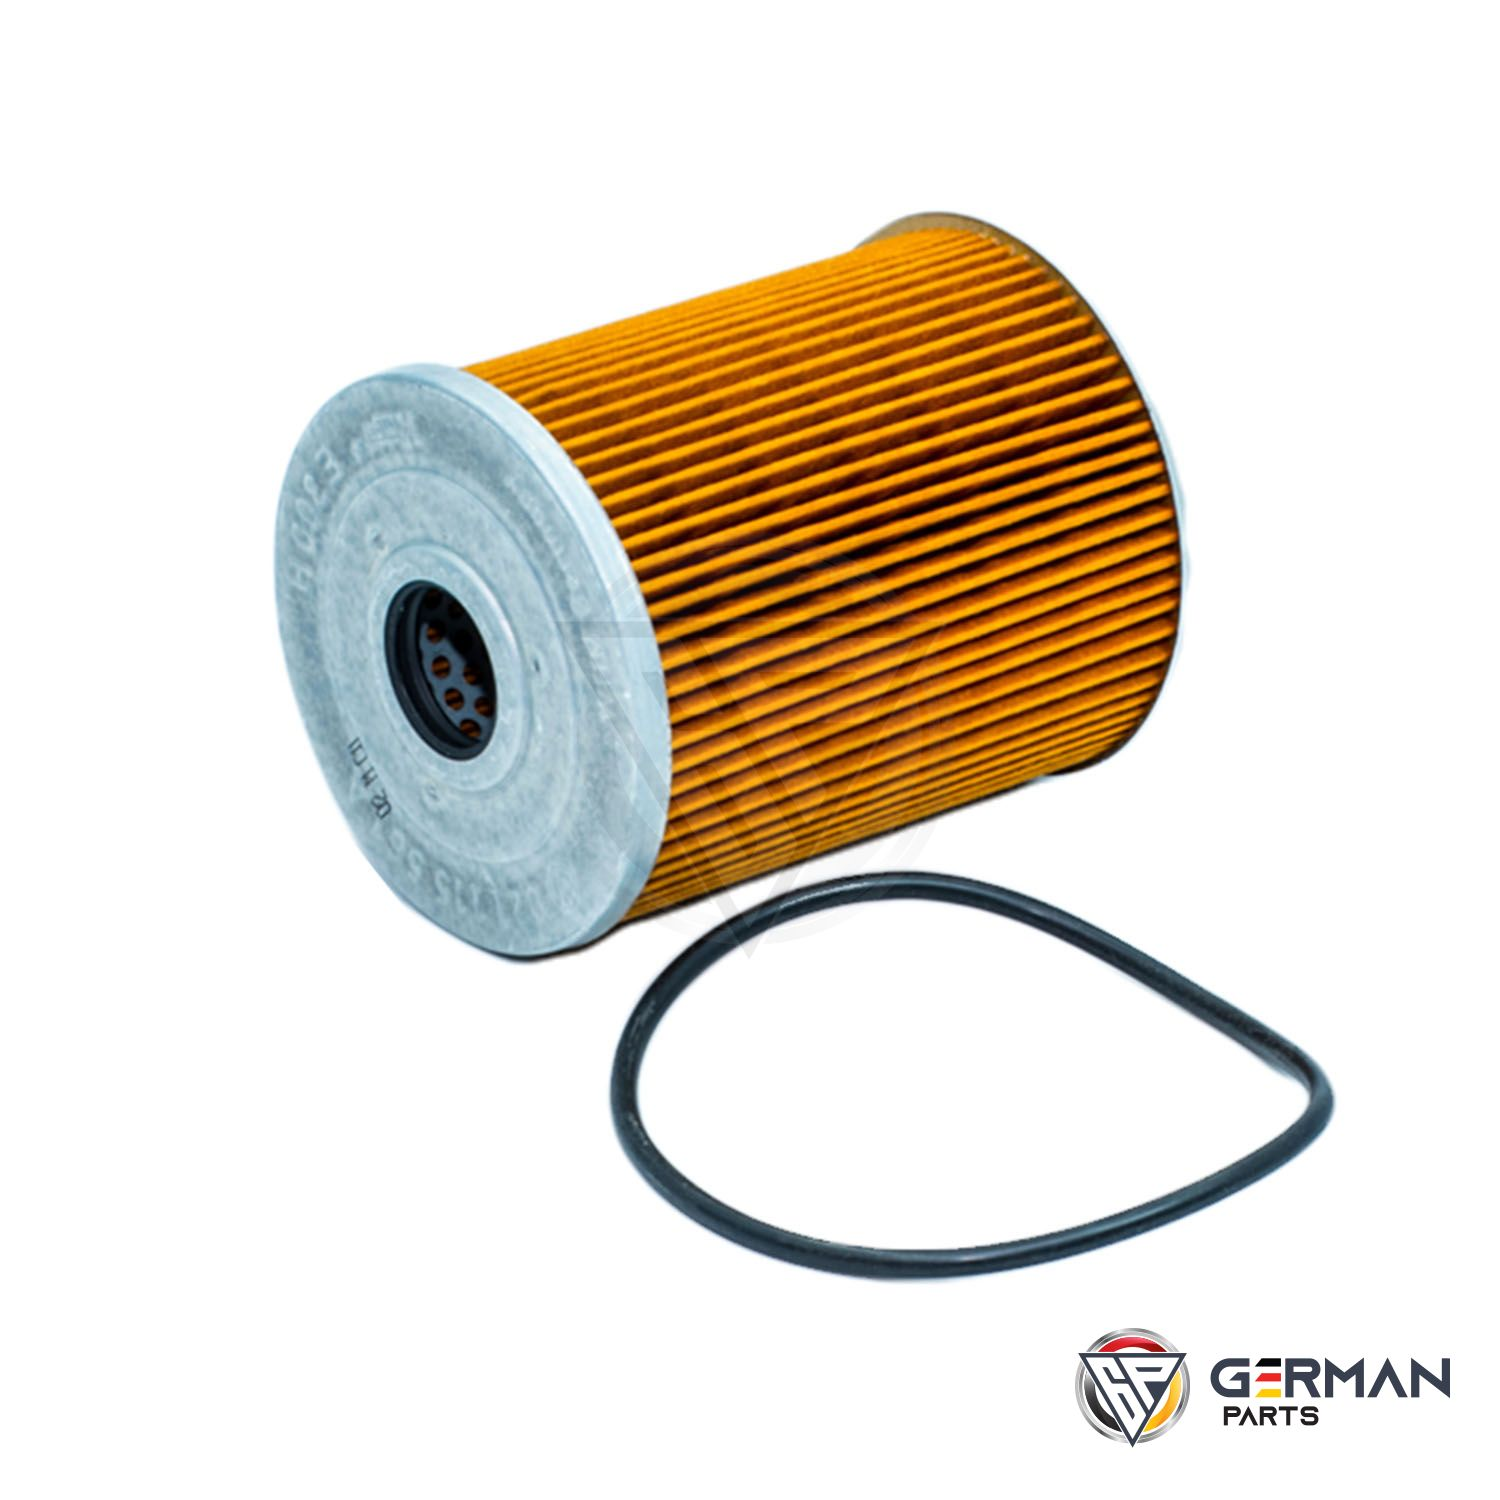 Buy Genuine Porsche Oil Filter 0PB115466 - German Parts